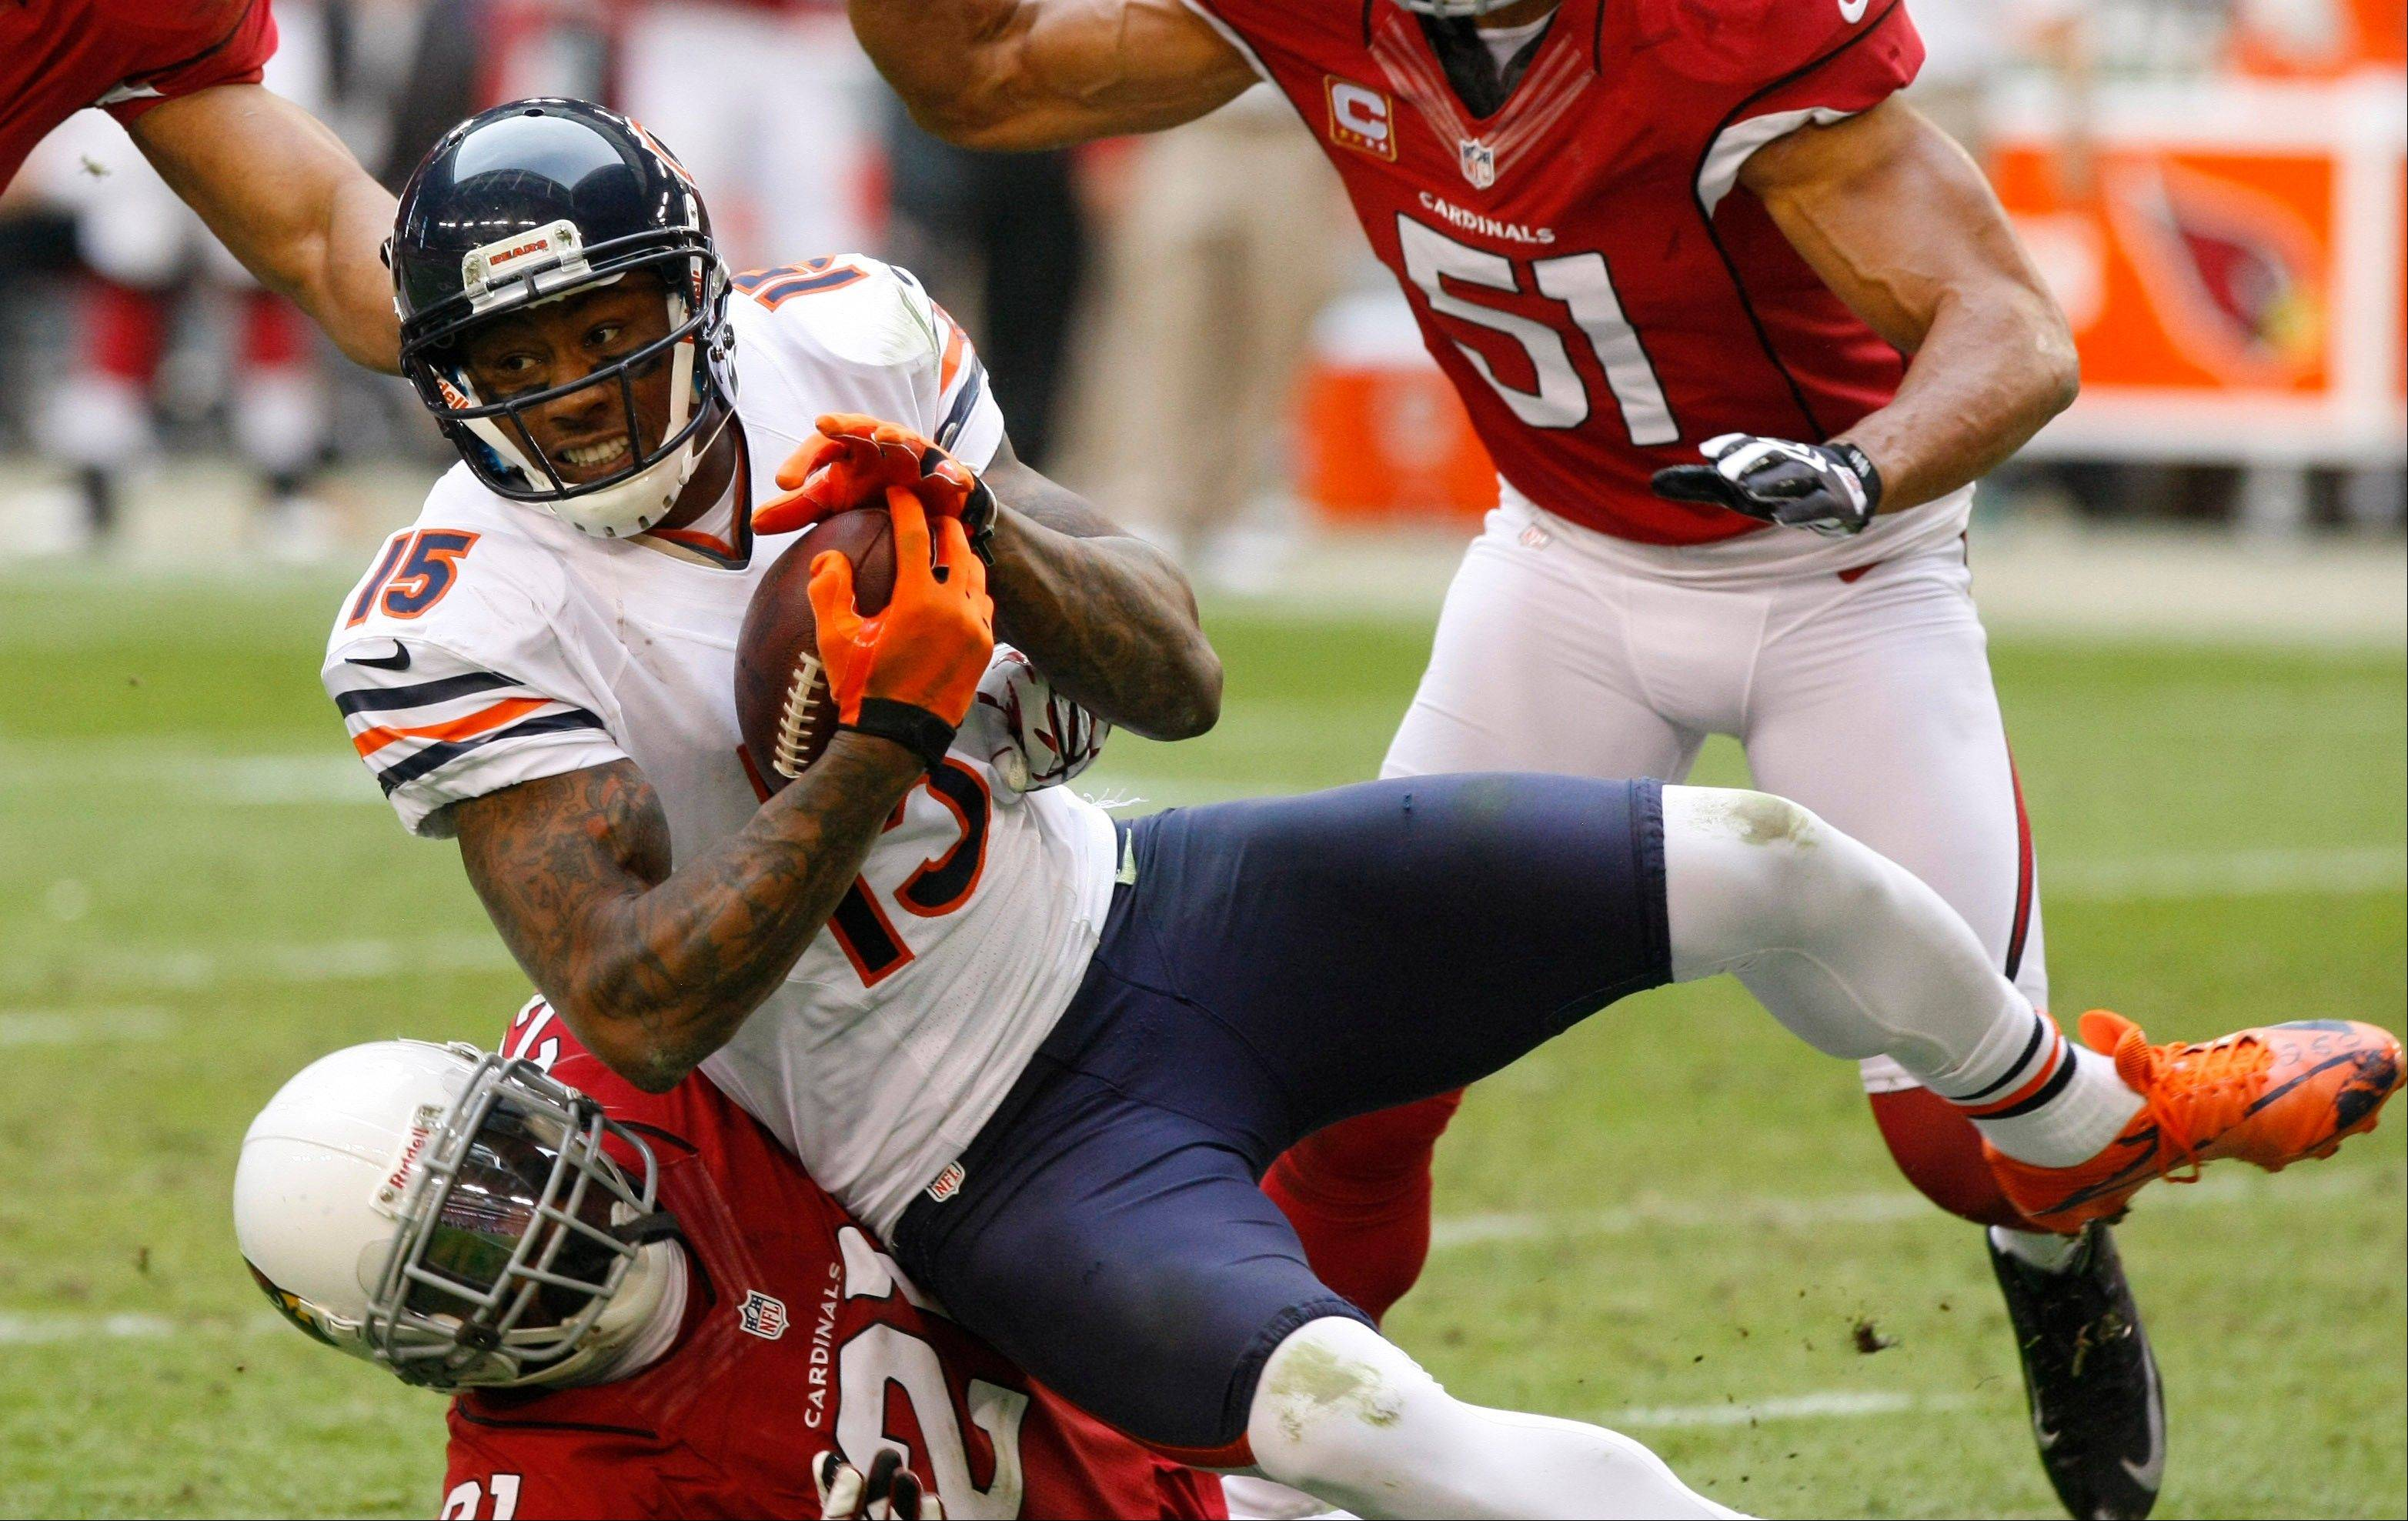 Bears wide receiver Brandon Marshall finished with 6 catches for 68 yards in Sunday's victory, but he was less than happy with his performance.